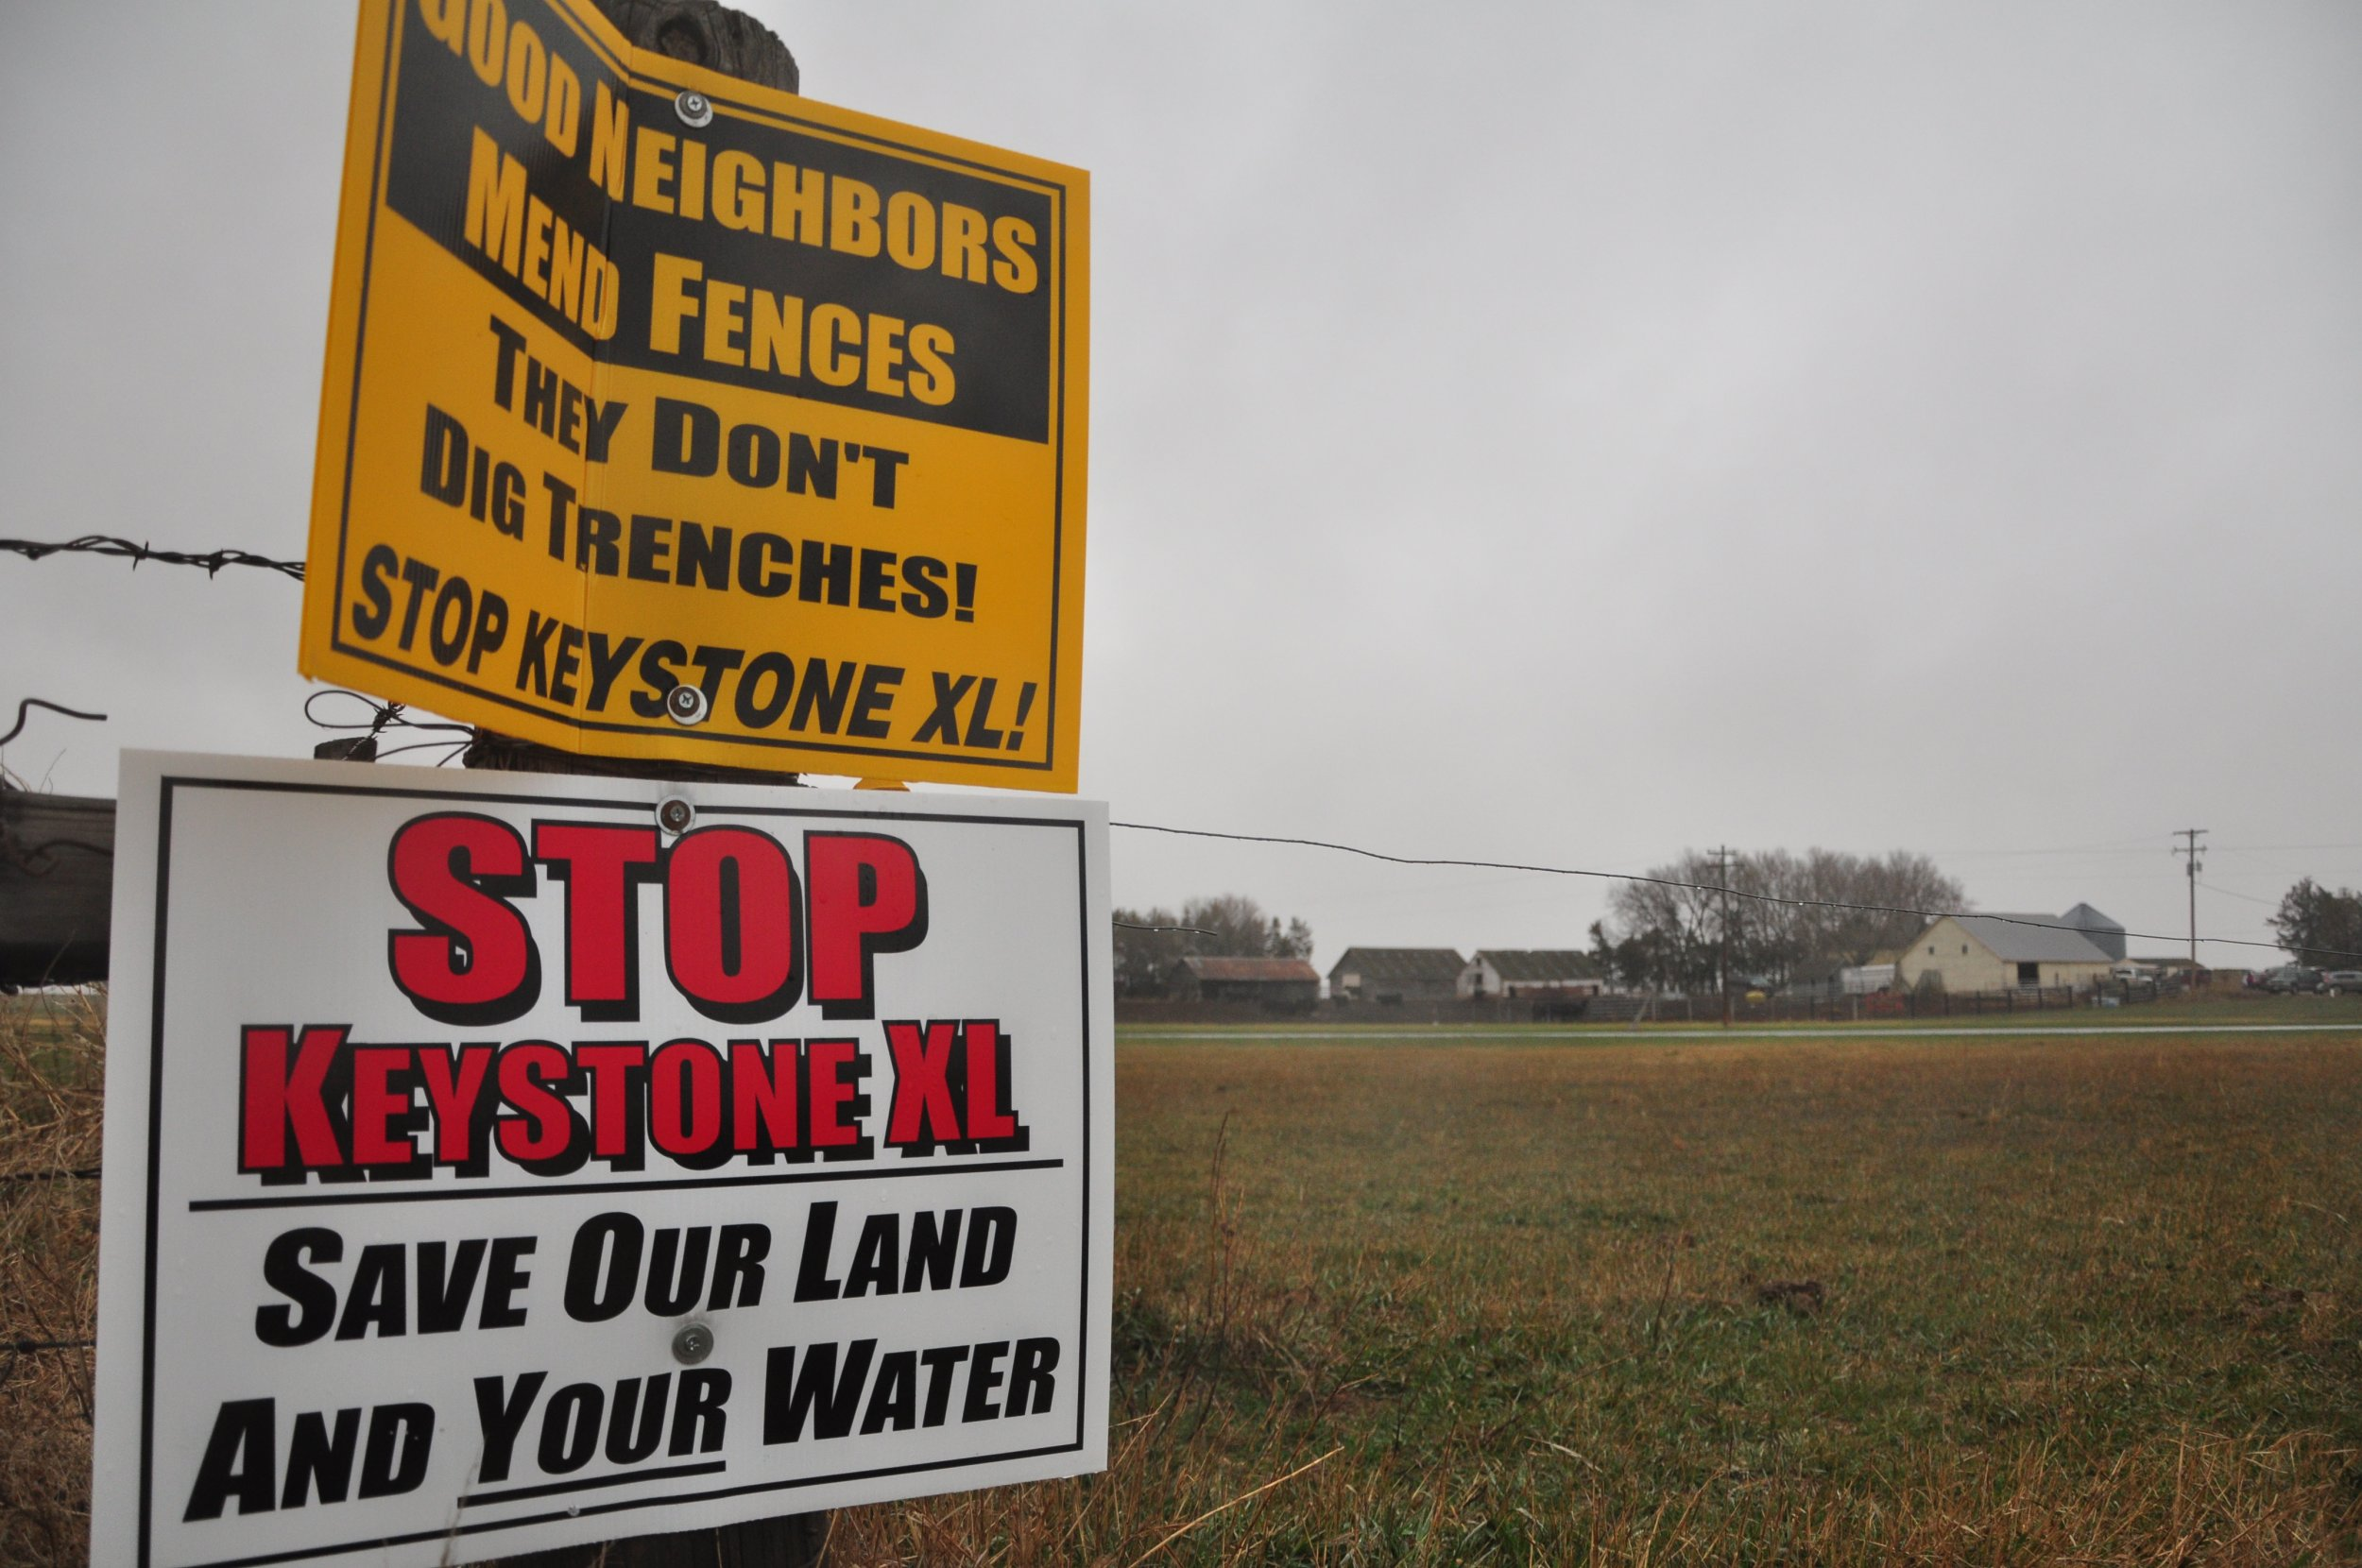 Landowners Win Temporary Eminent Domain Injunction Over Keystone